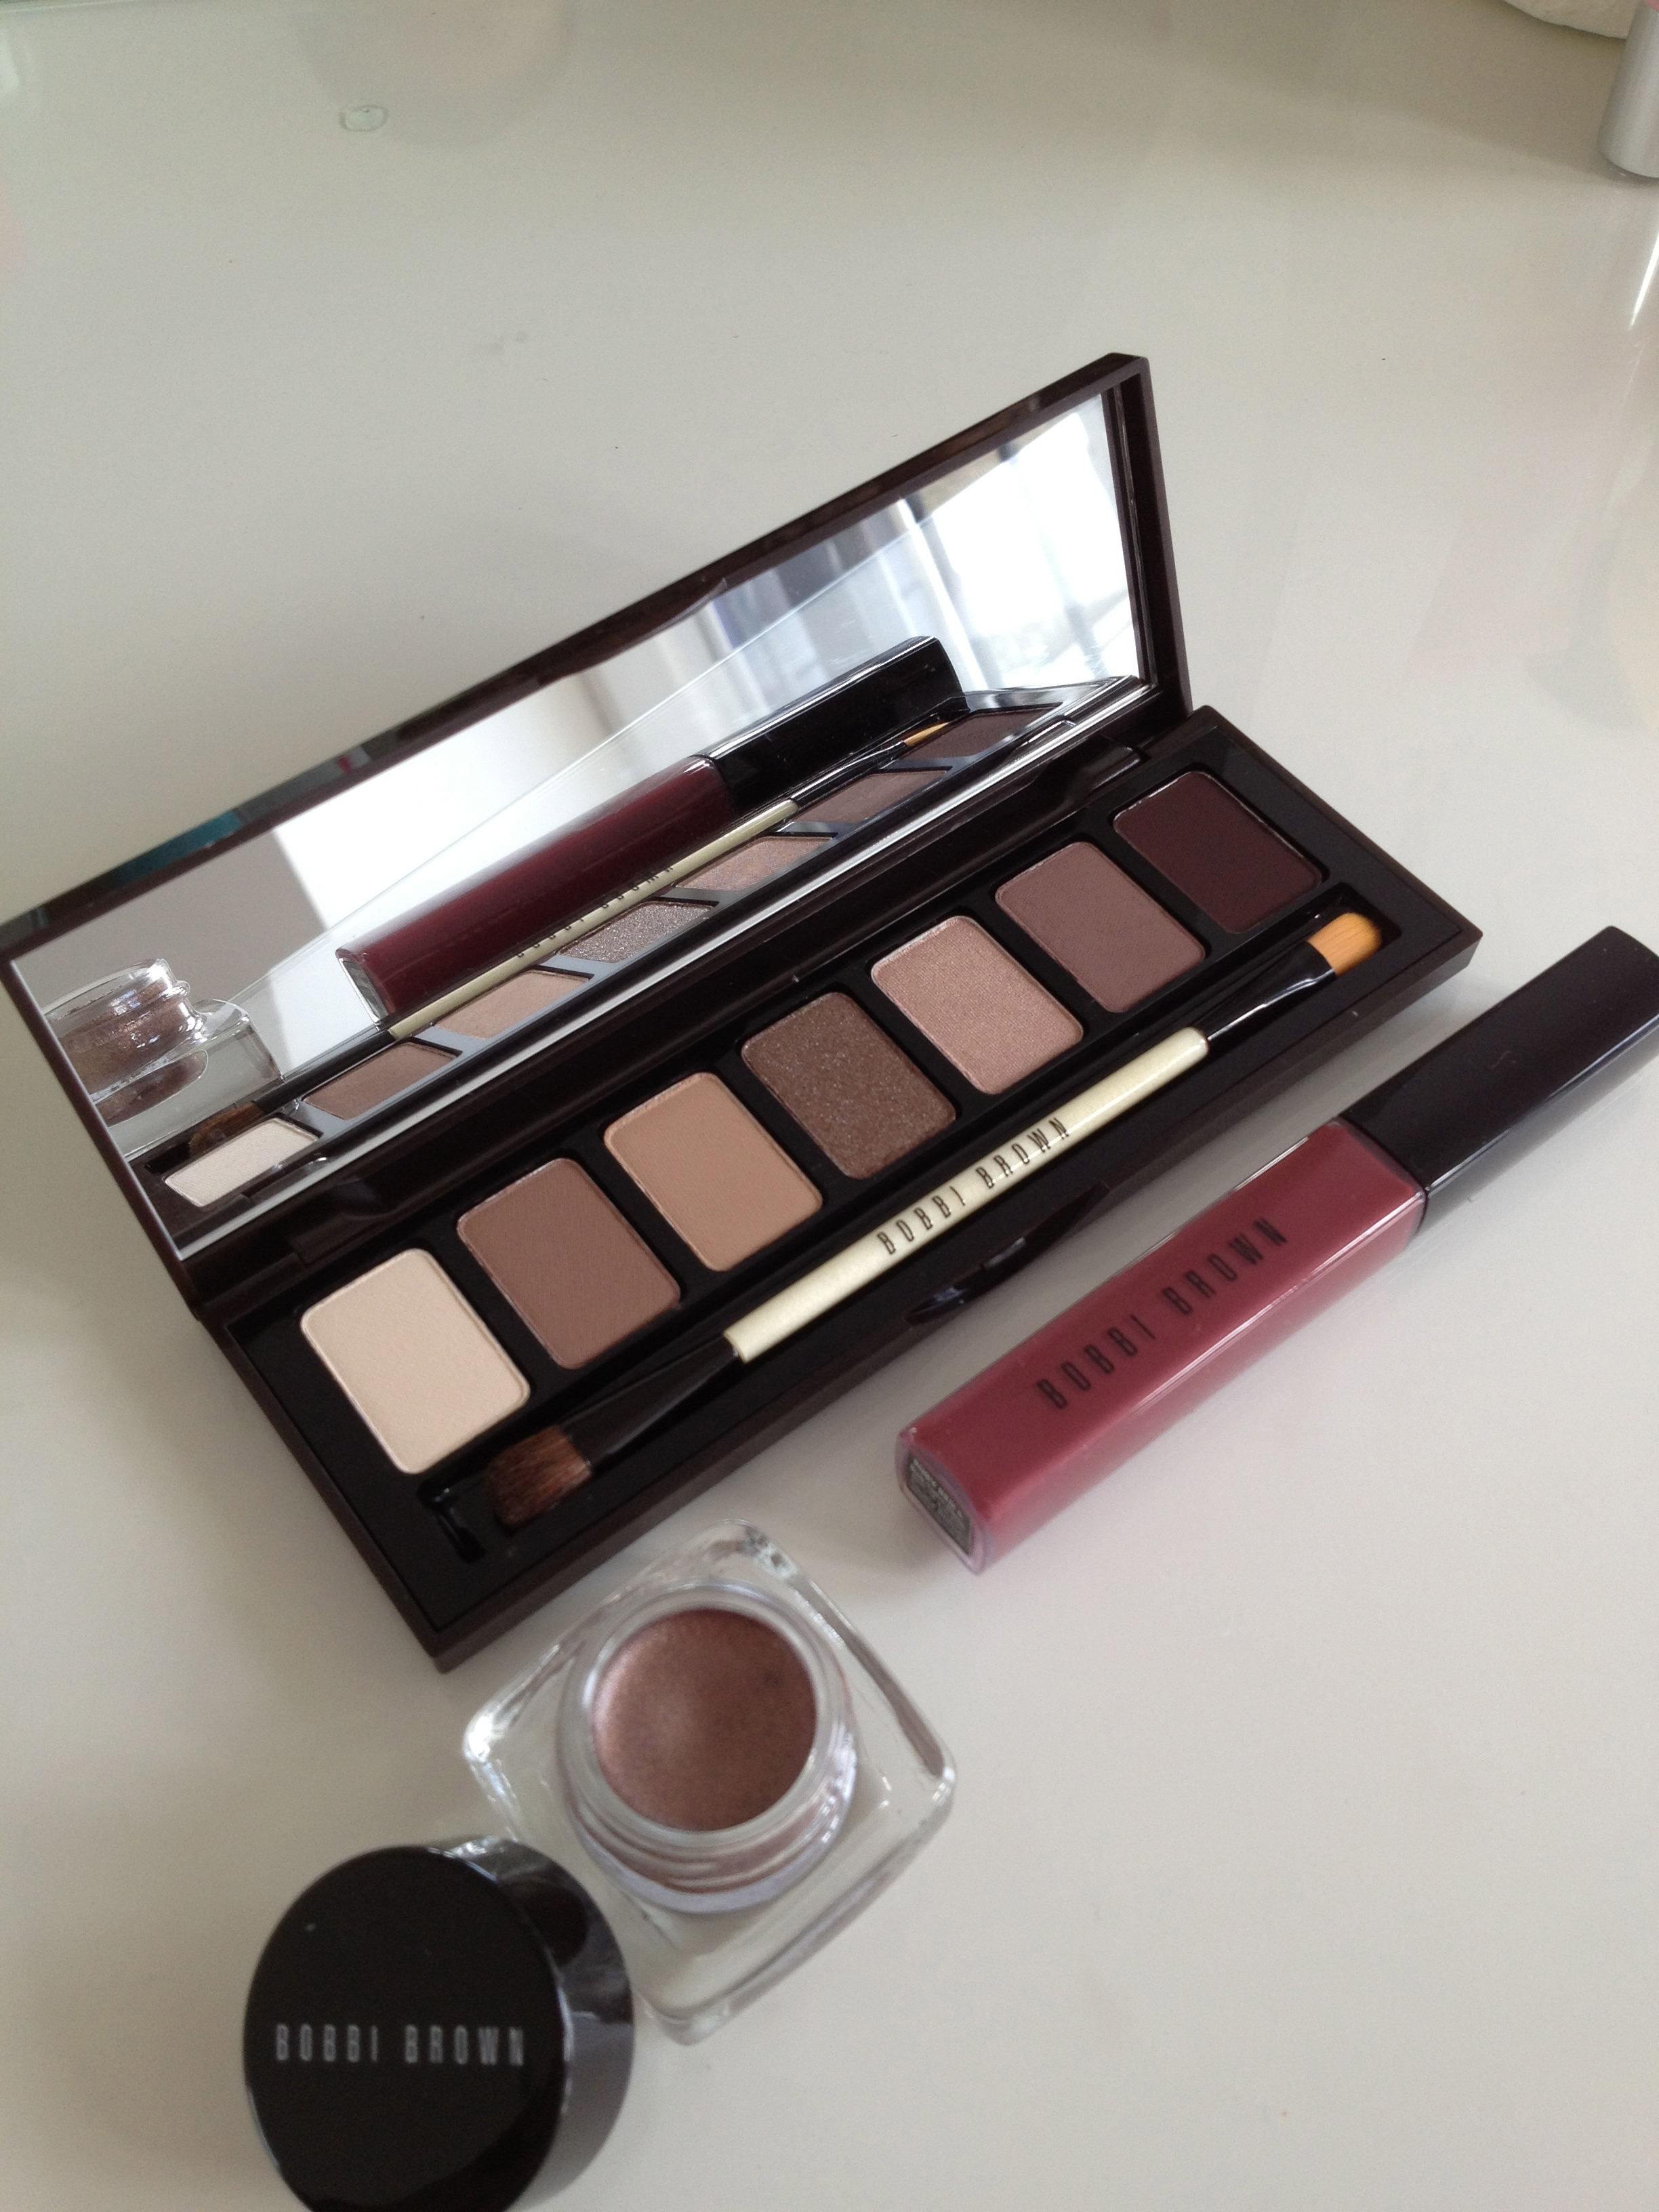 Rich Chocolate Palette shown here with Long-Wear Cream Shadow in Velvet Plum & Rich Colour Gloss in Ruby Red